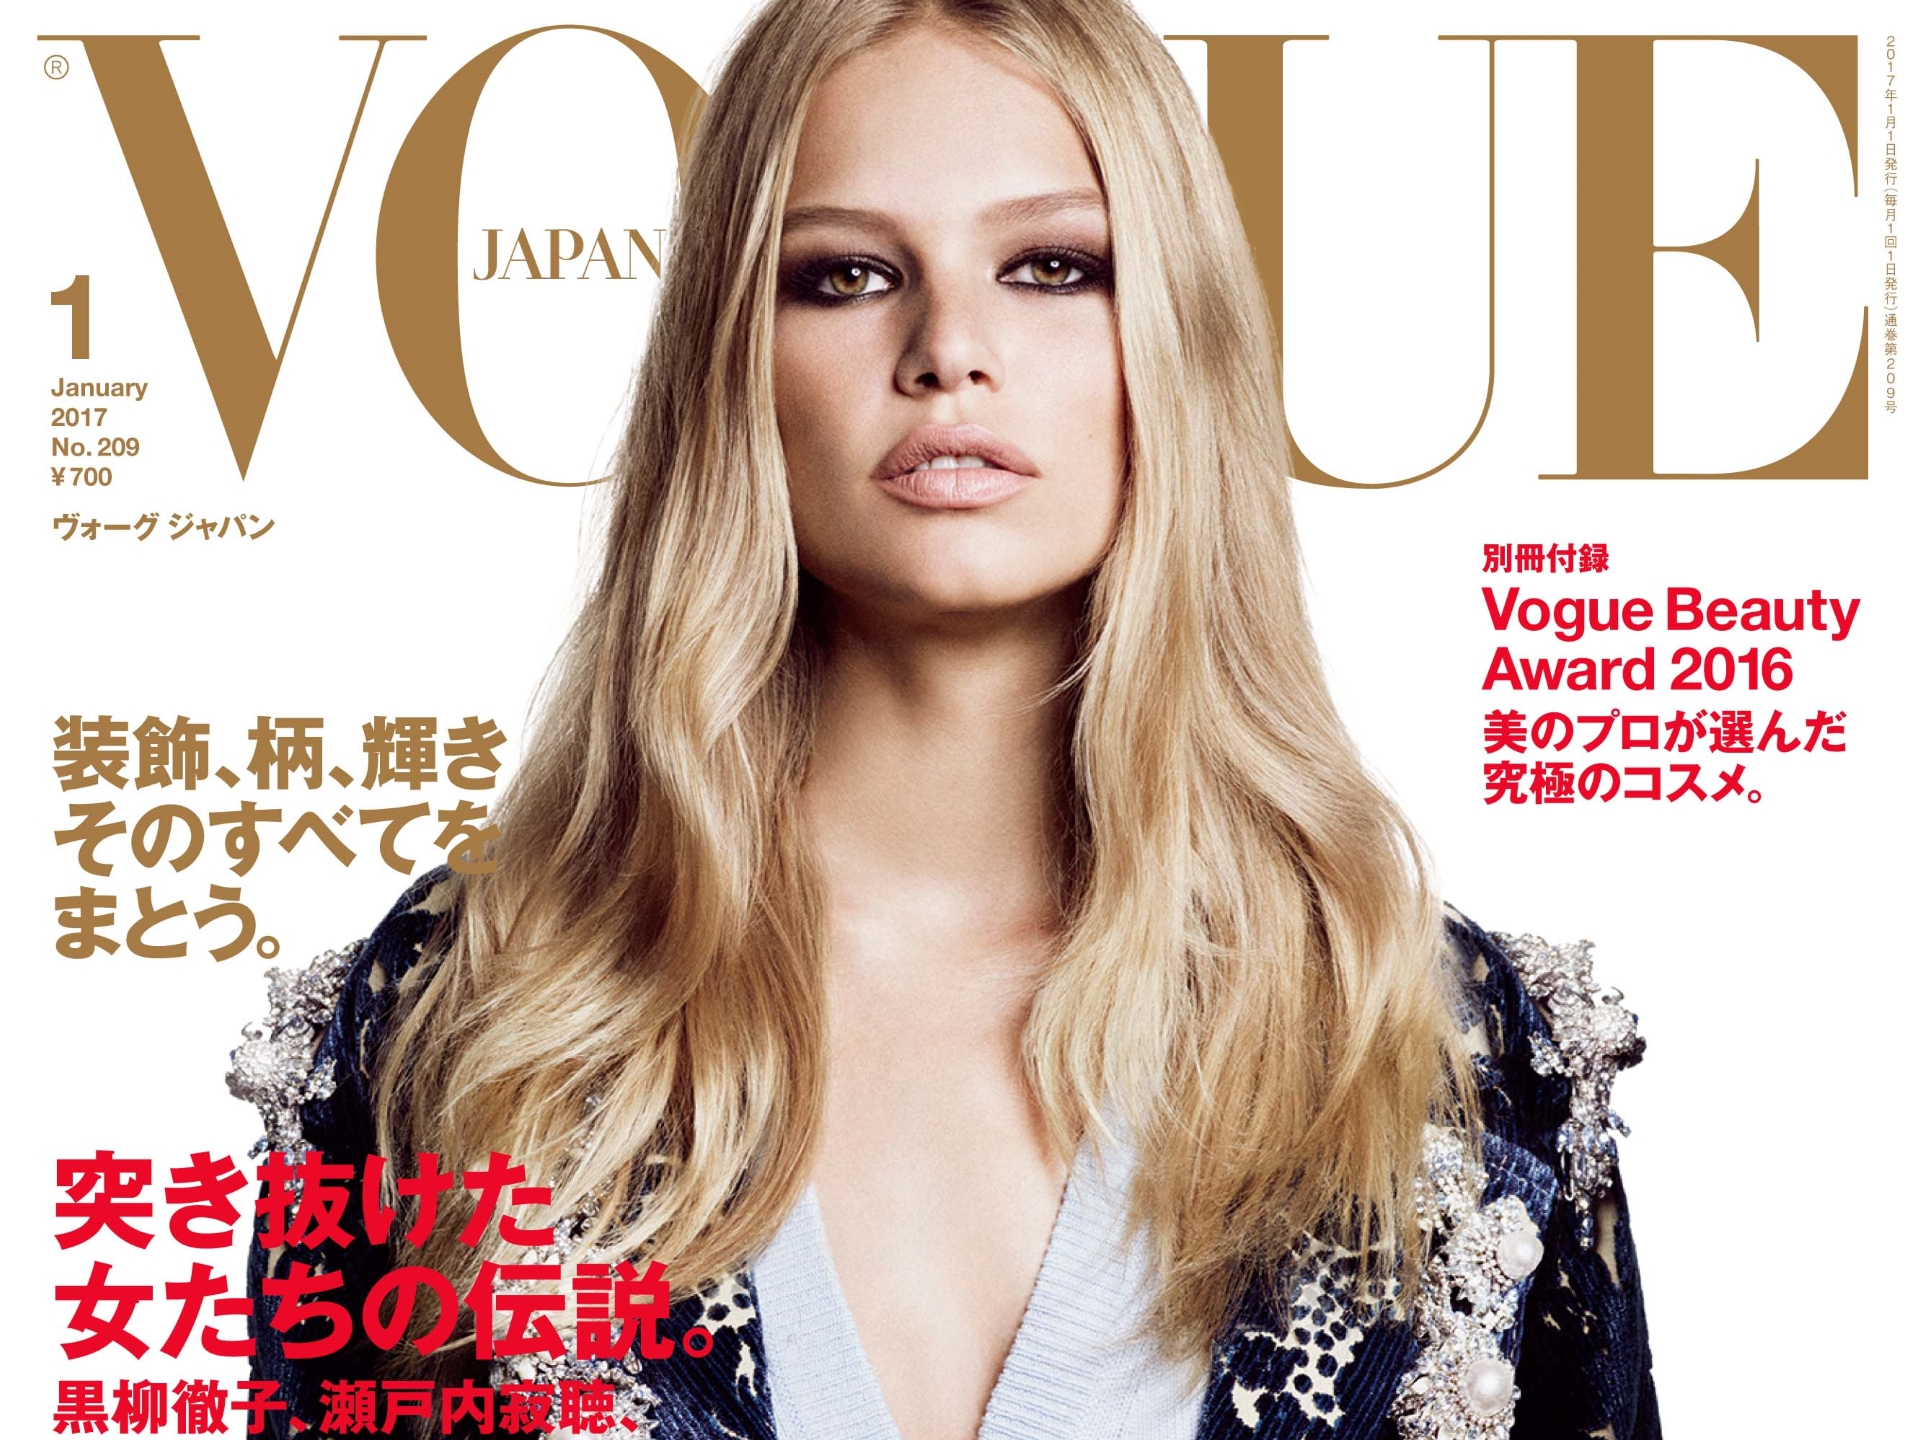 swimsuit ICloud Anna Ewers naked photo 2017